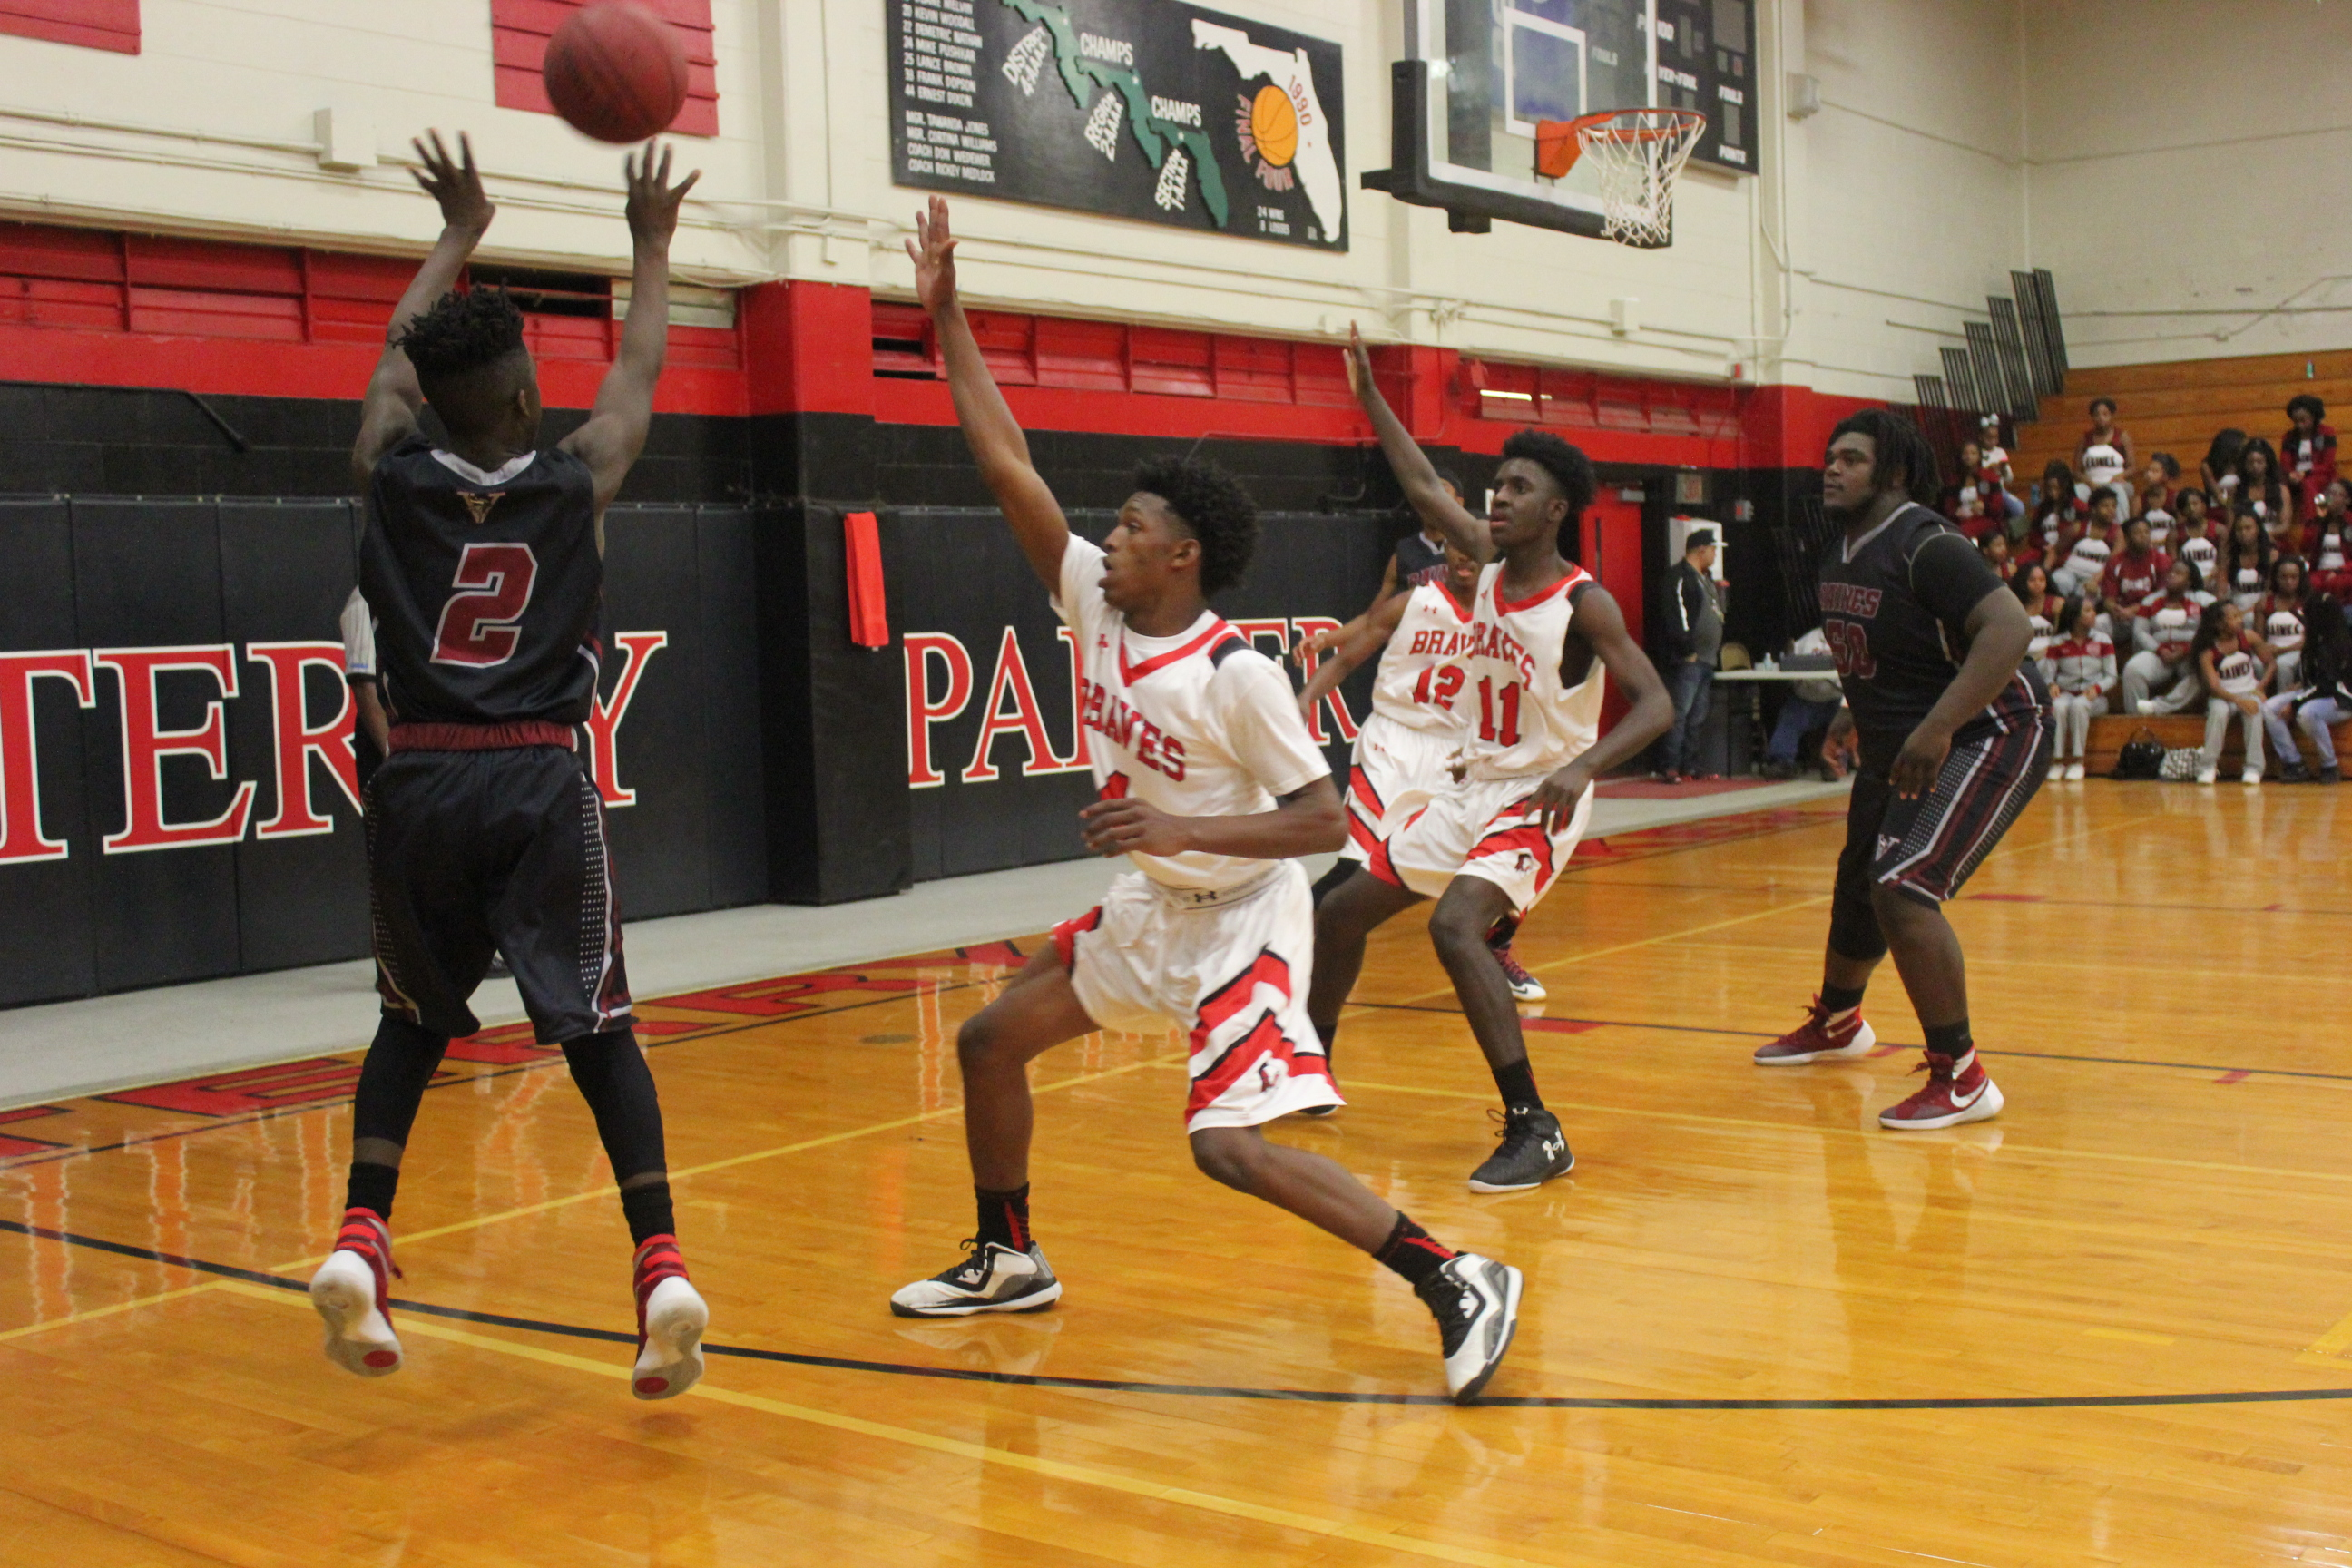 Terry Parker High School Basketball